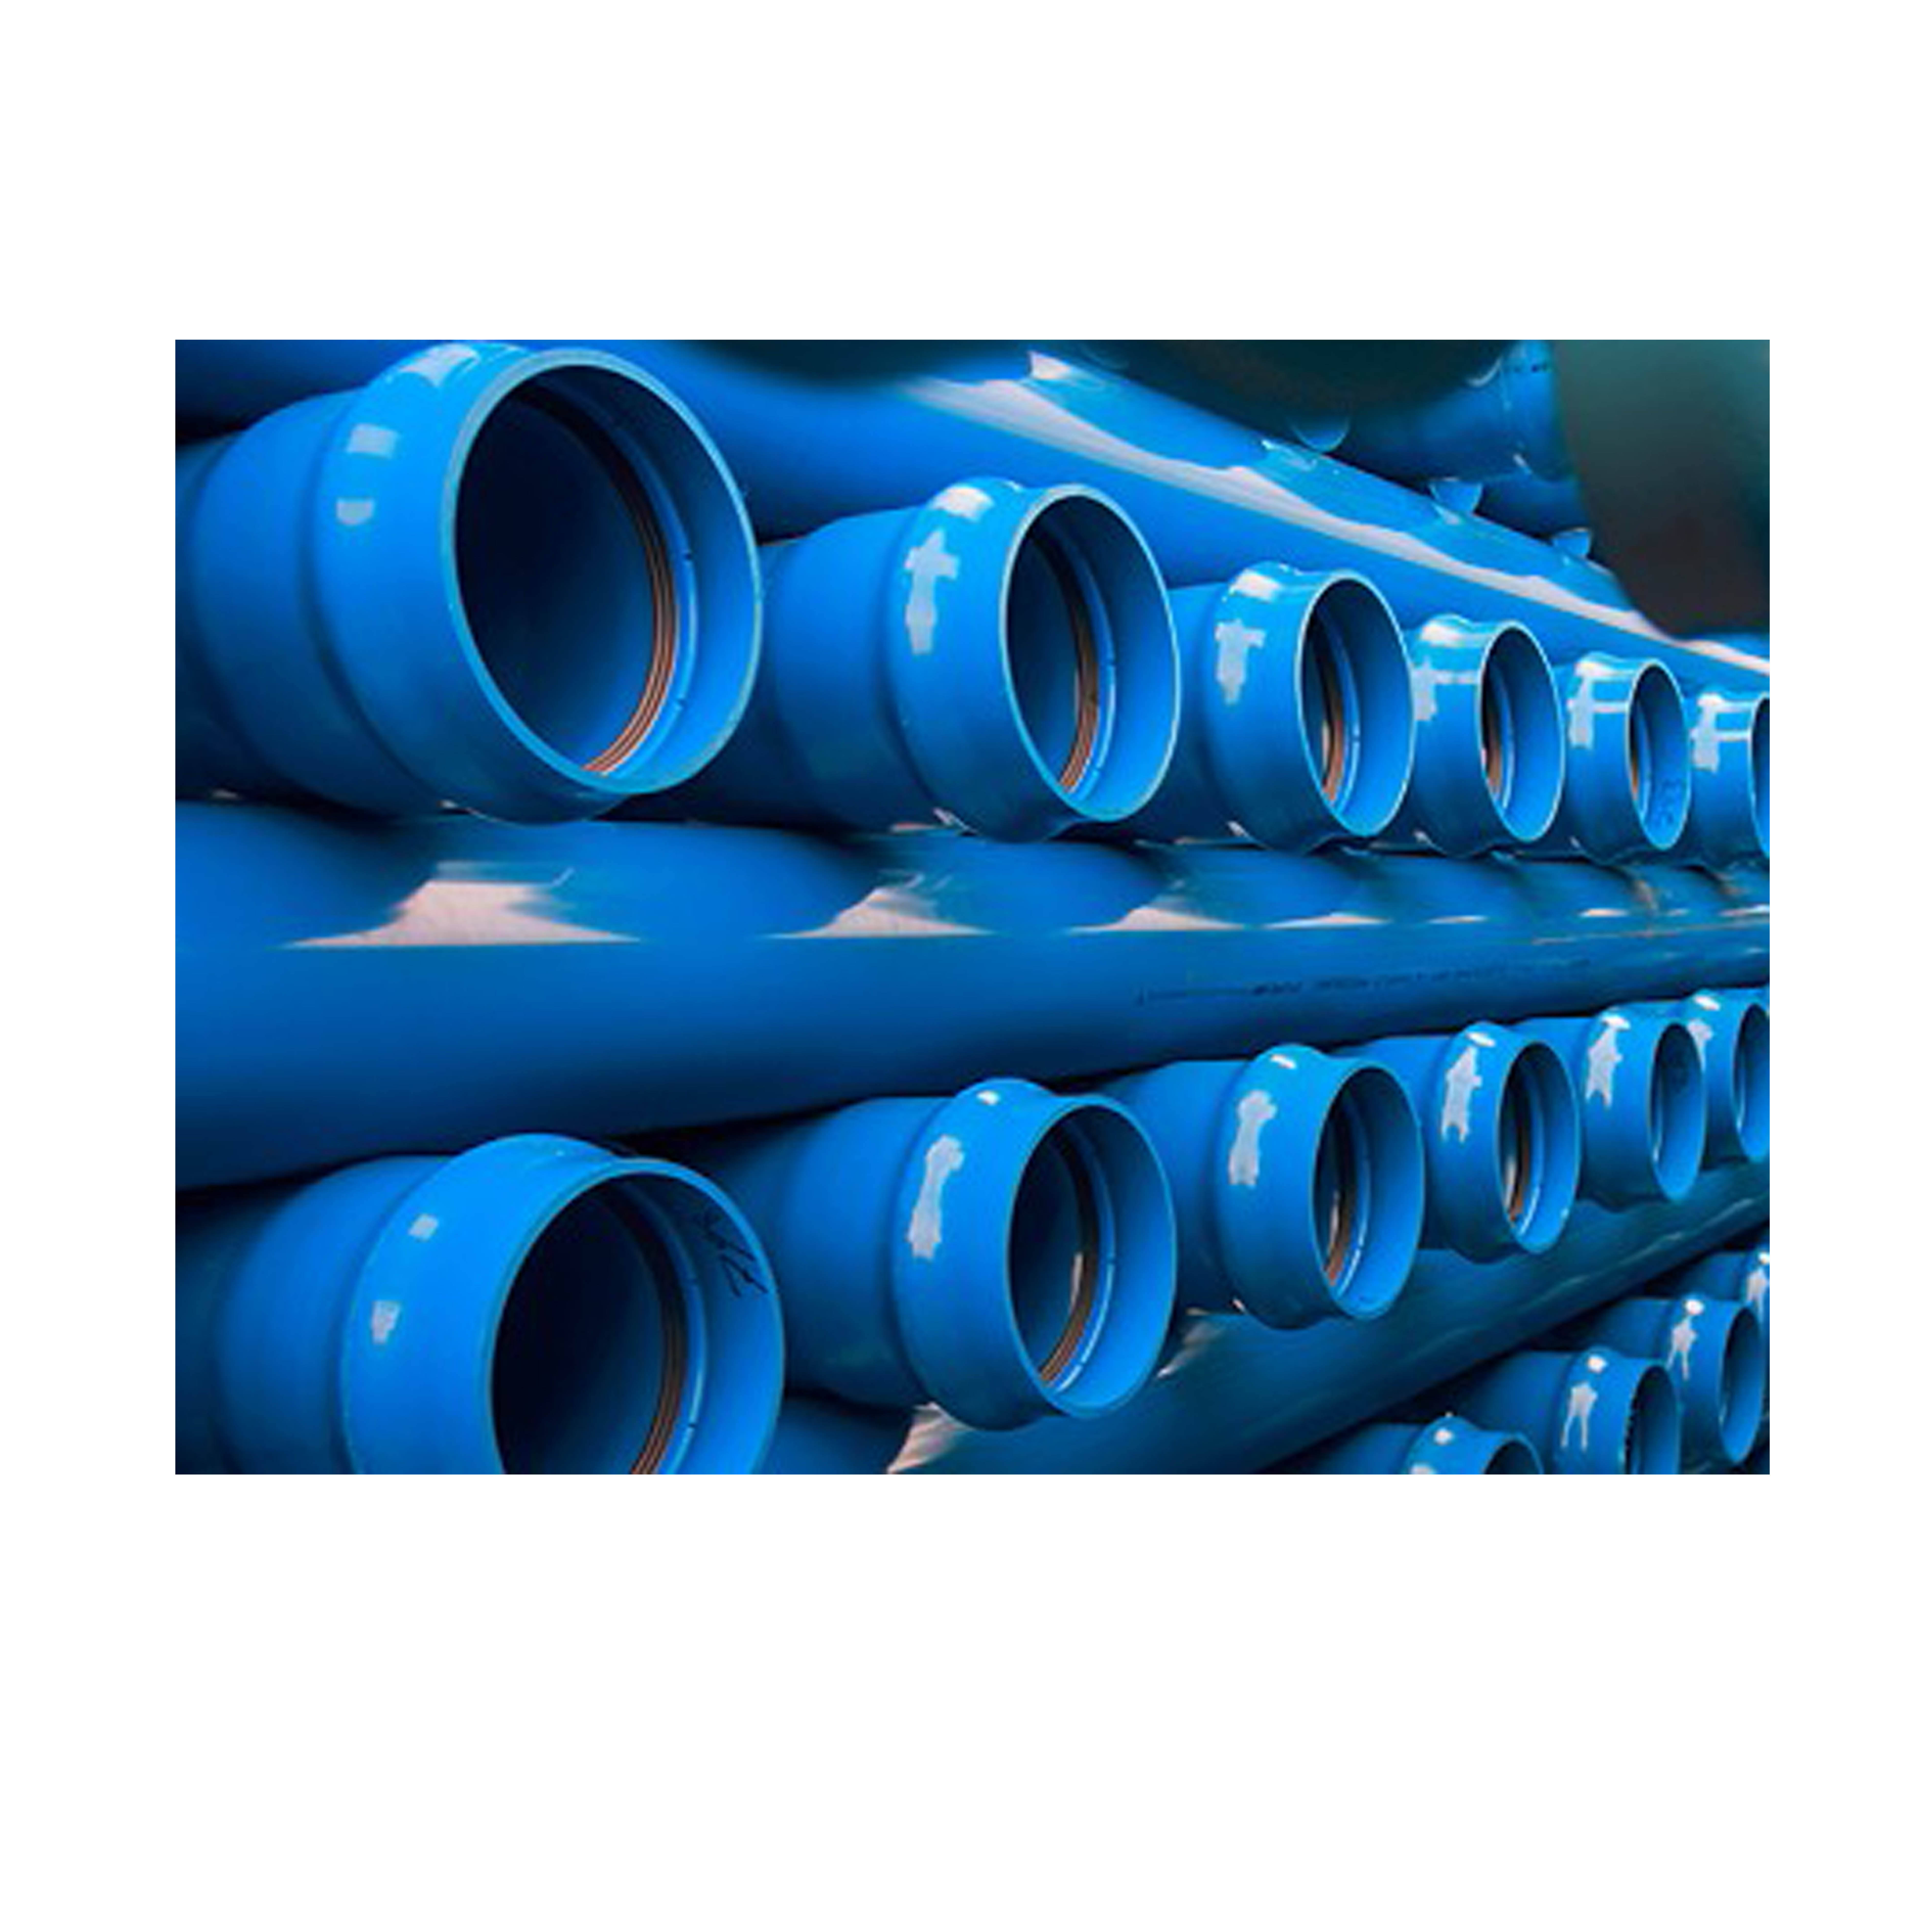 Unplasticized Polyvinyl Chloride uPVC Pressure pipes and fittings for cold potable water